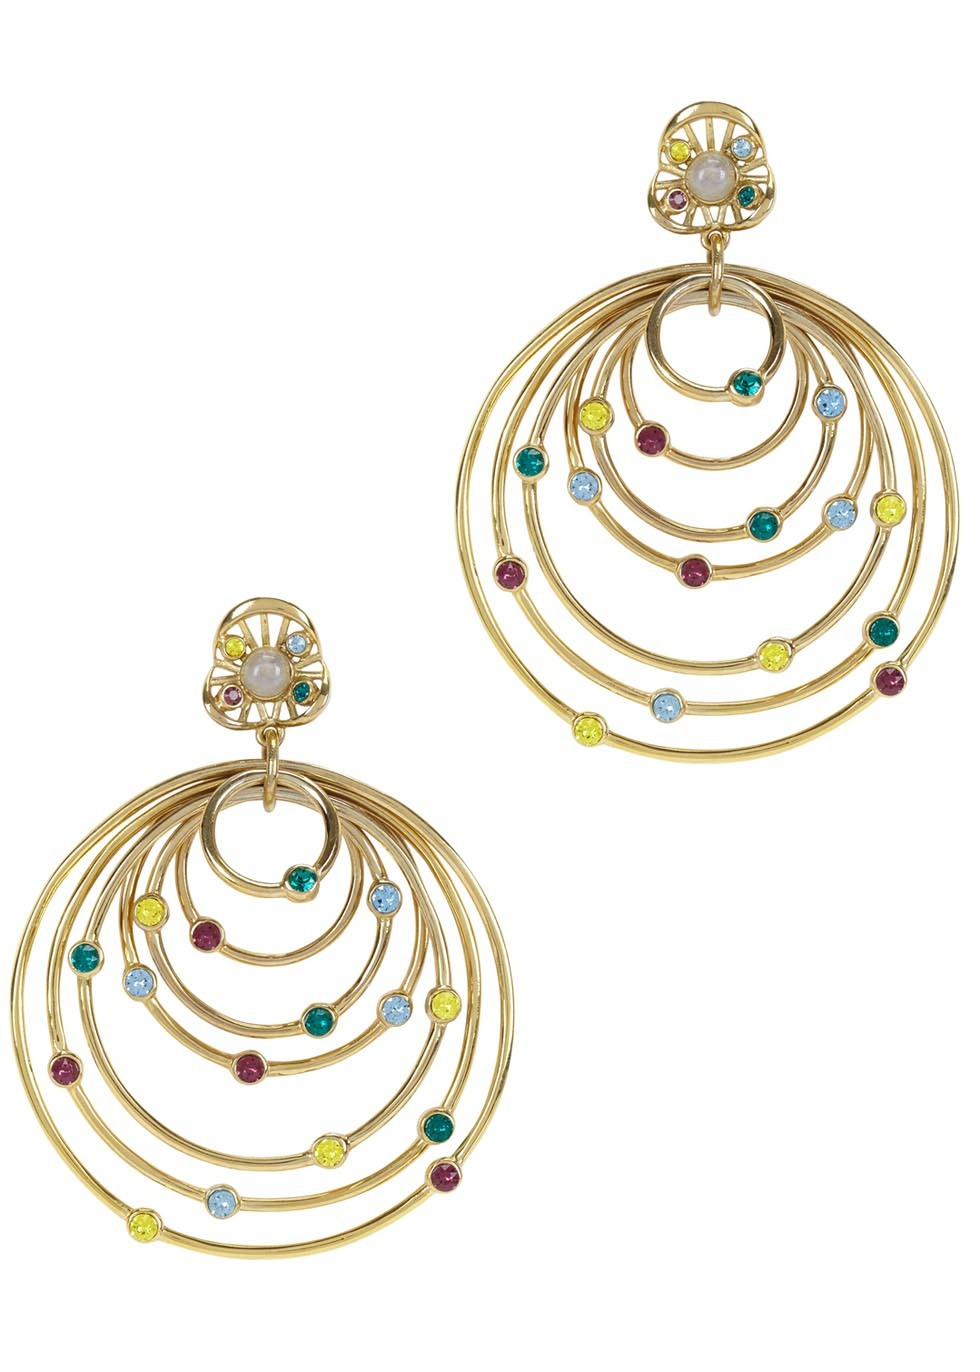 Serpent Orb Allure Gold Plated Earrings - predominant colour: gold; occasions: evening, occasion, creative work; style: hoop; length: mid; size: large/oversized; material: chain/metal; fastening: pierced; finish: metallic; embellishment: jewels/stone; wardrobe: basic; season: a/w 2016